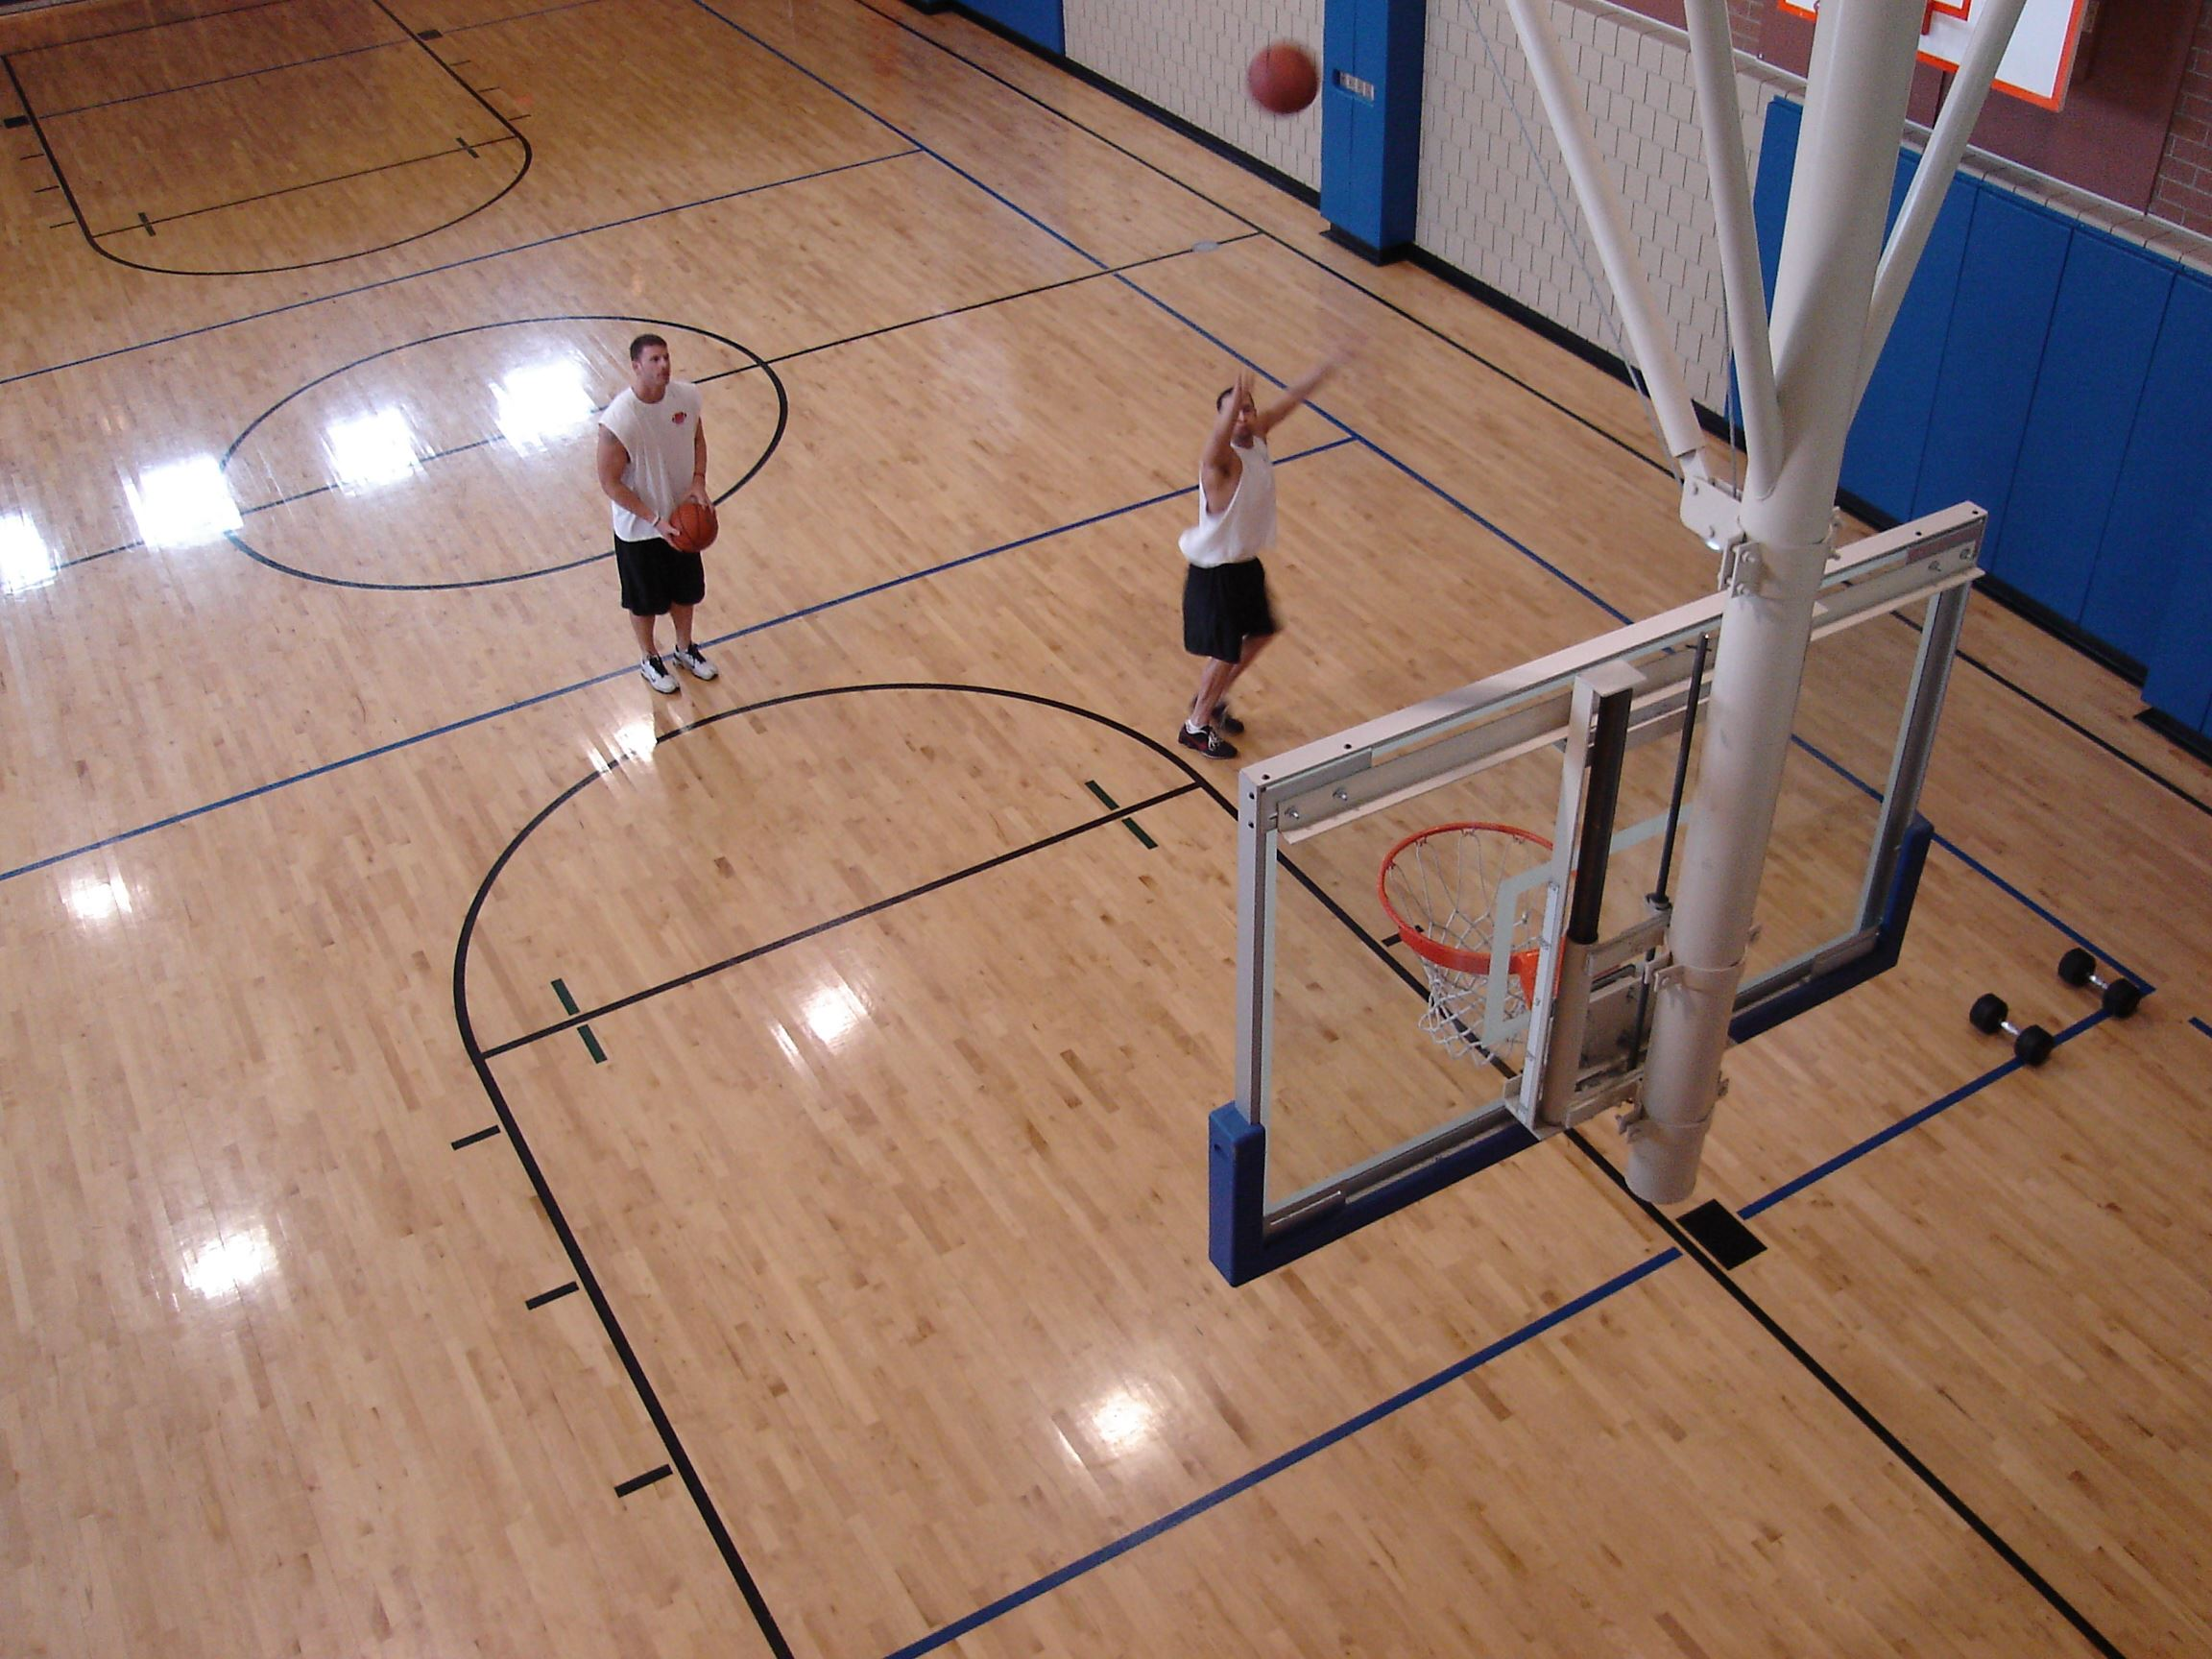 Rec Center Basketball Court